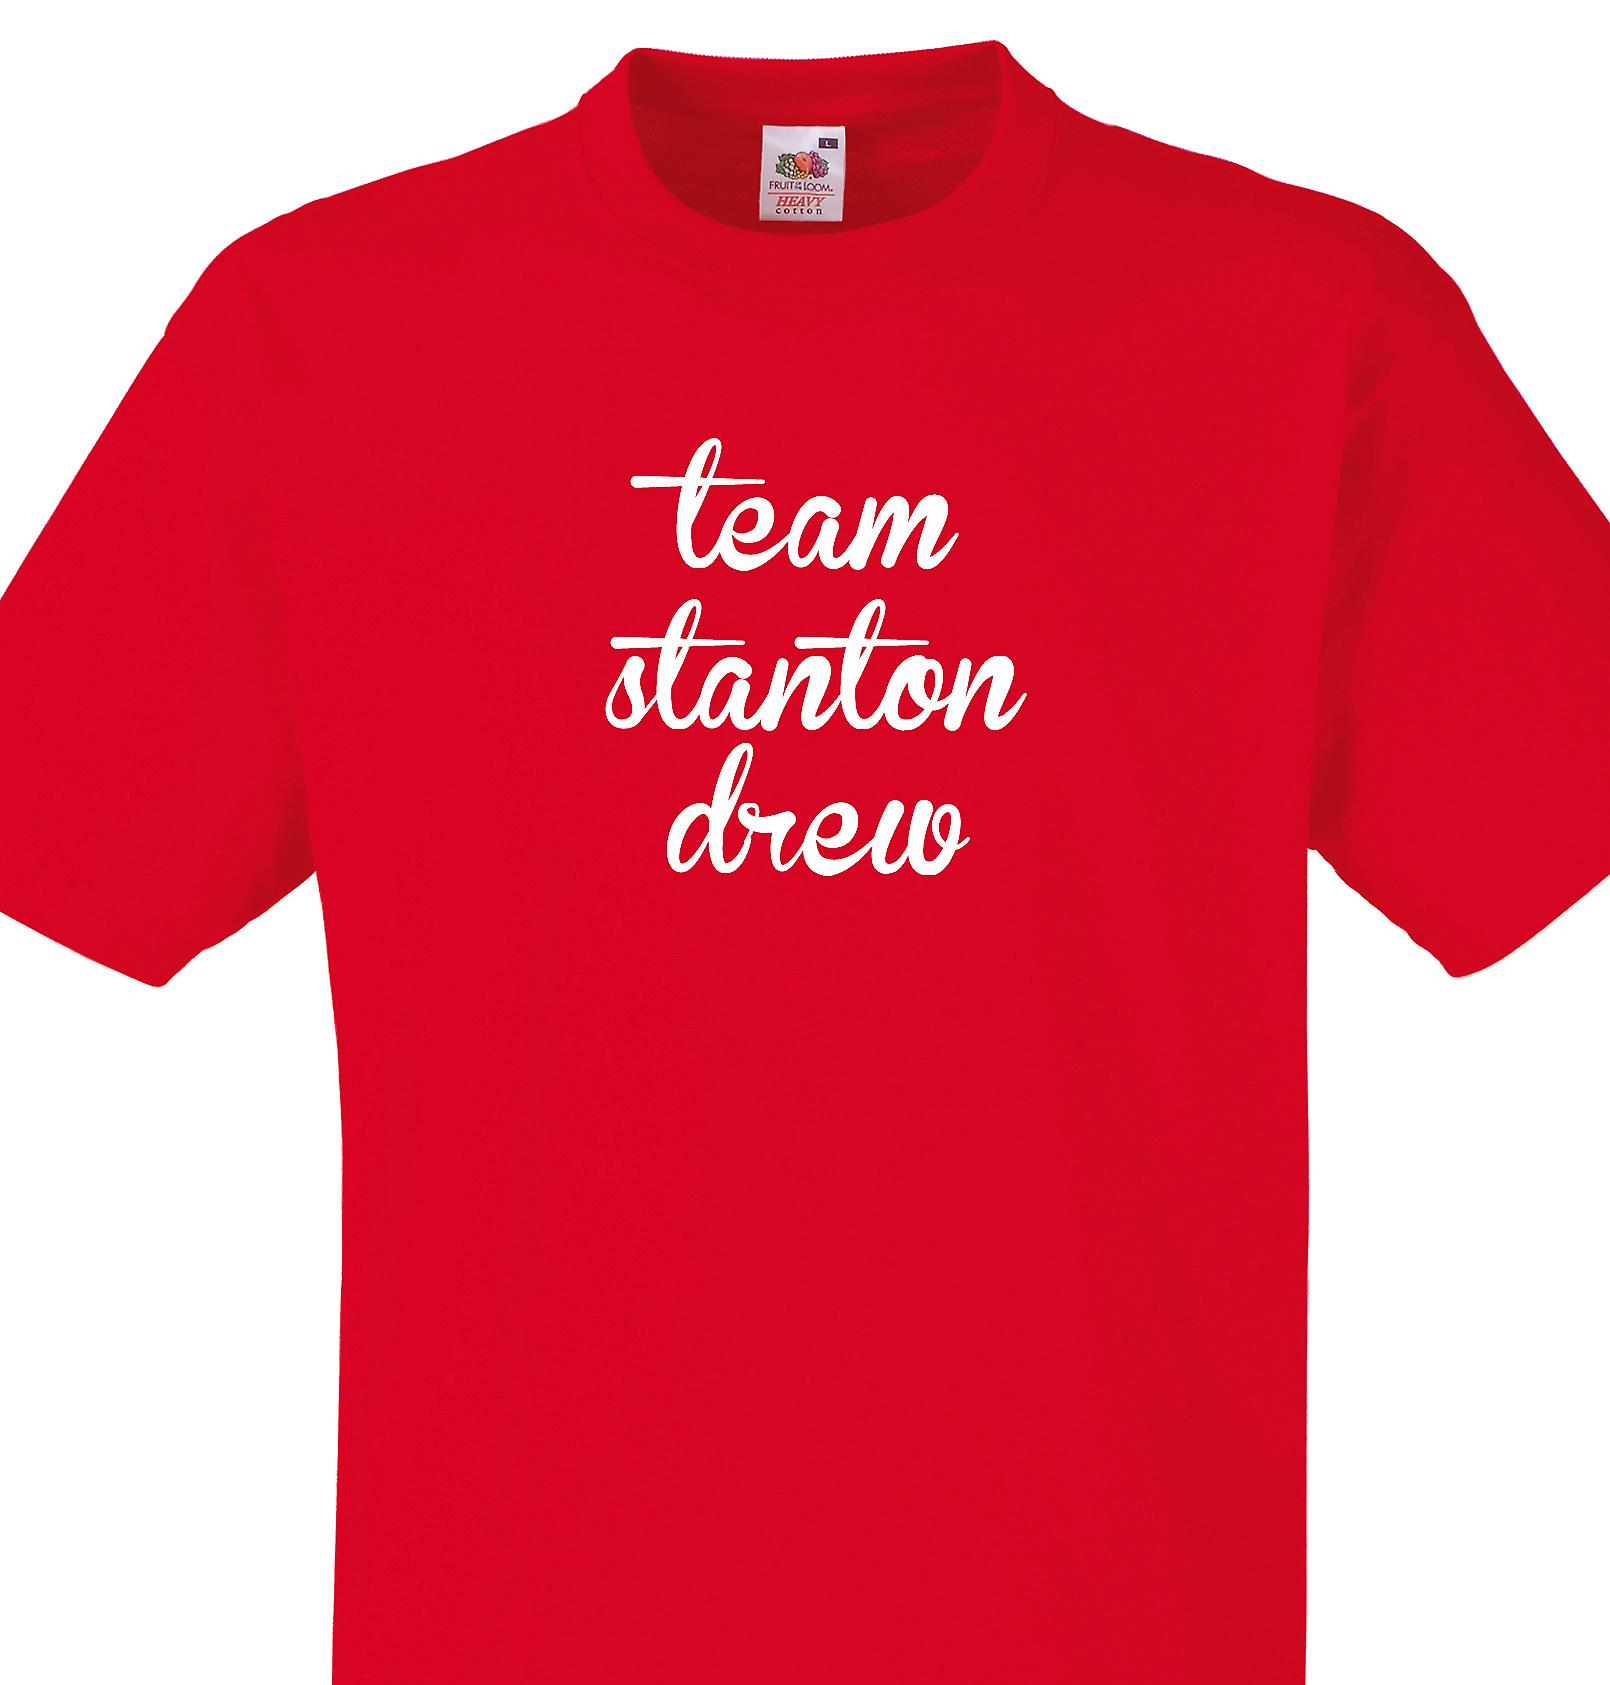 Team Stanton drew Red T shirt